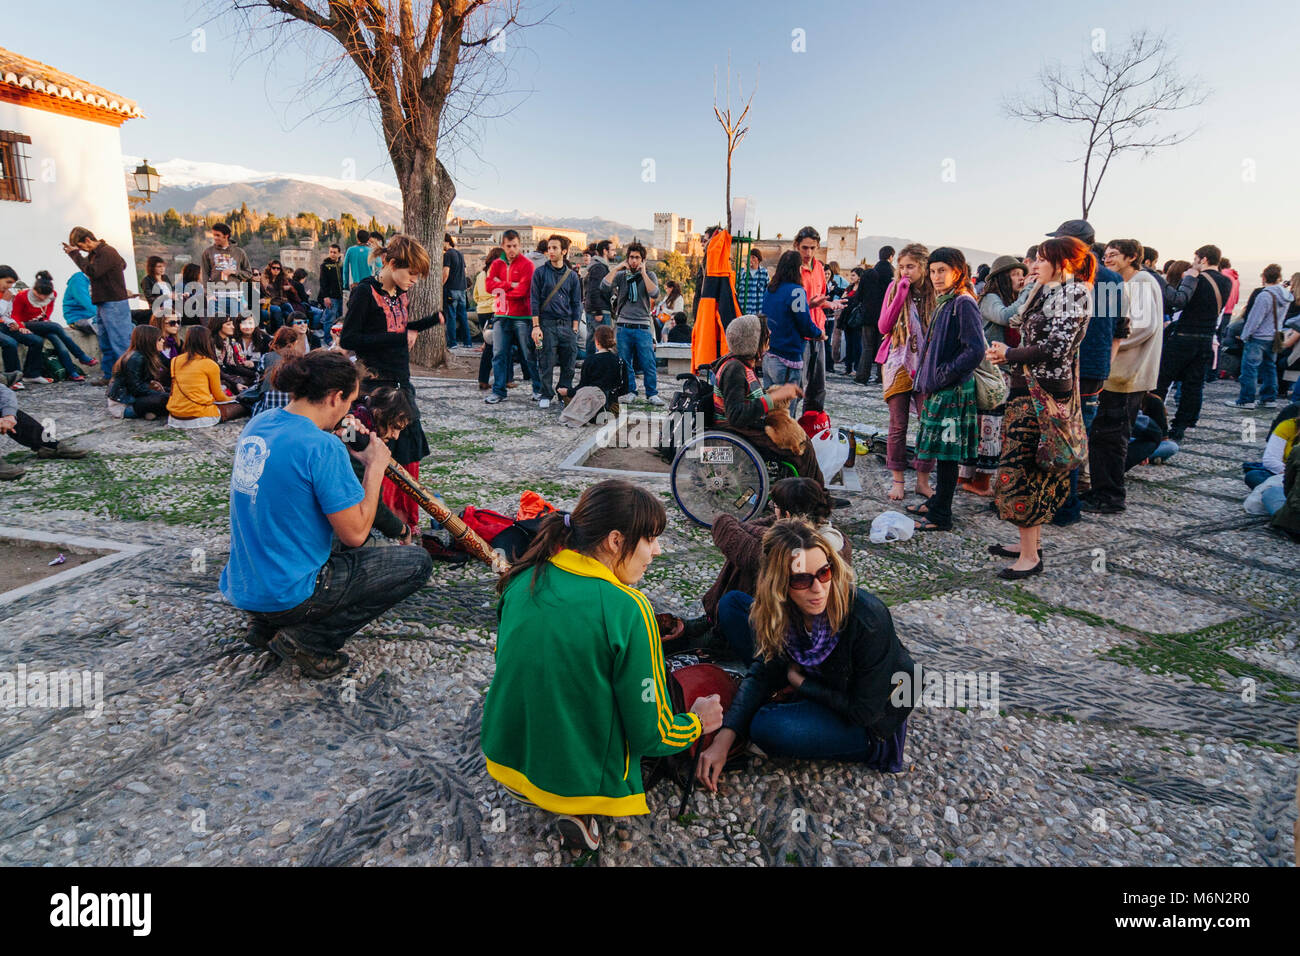 Granada, Andalusia, Spain. A crowd of tourists and young locals alike gathers at sunset in the San Nicolas lookout - Stock Image